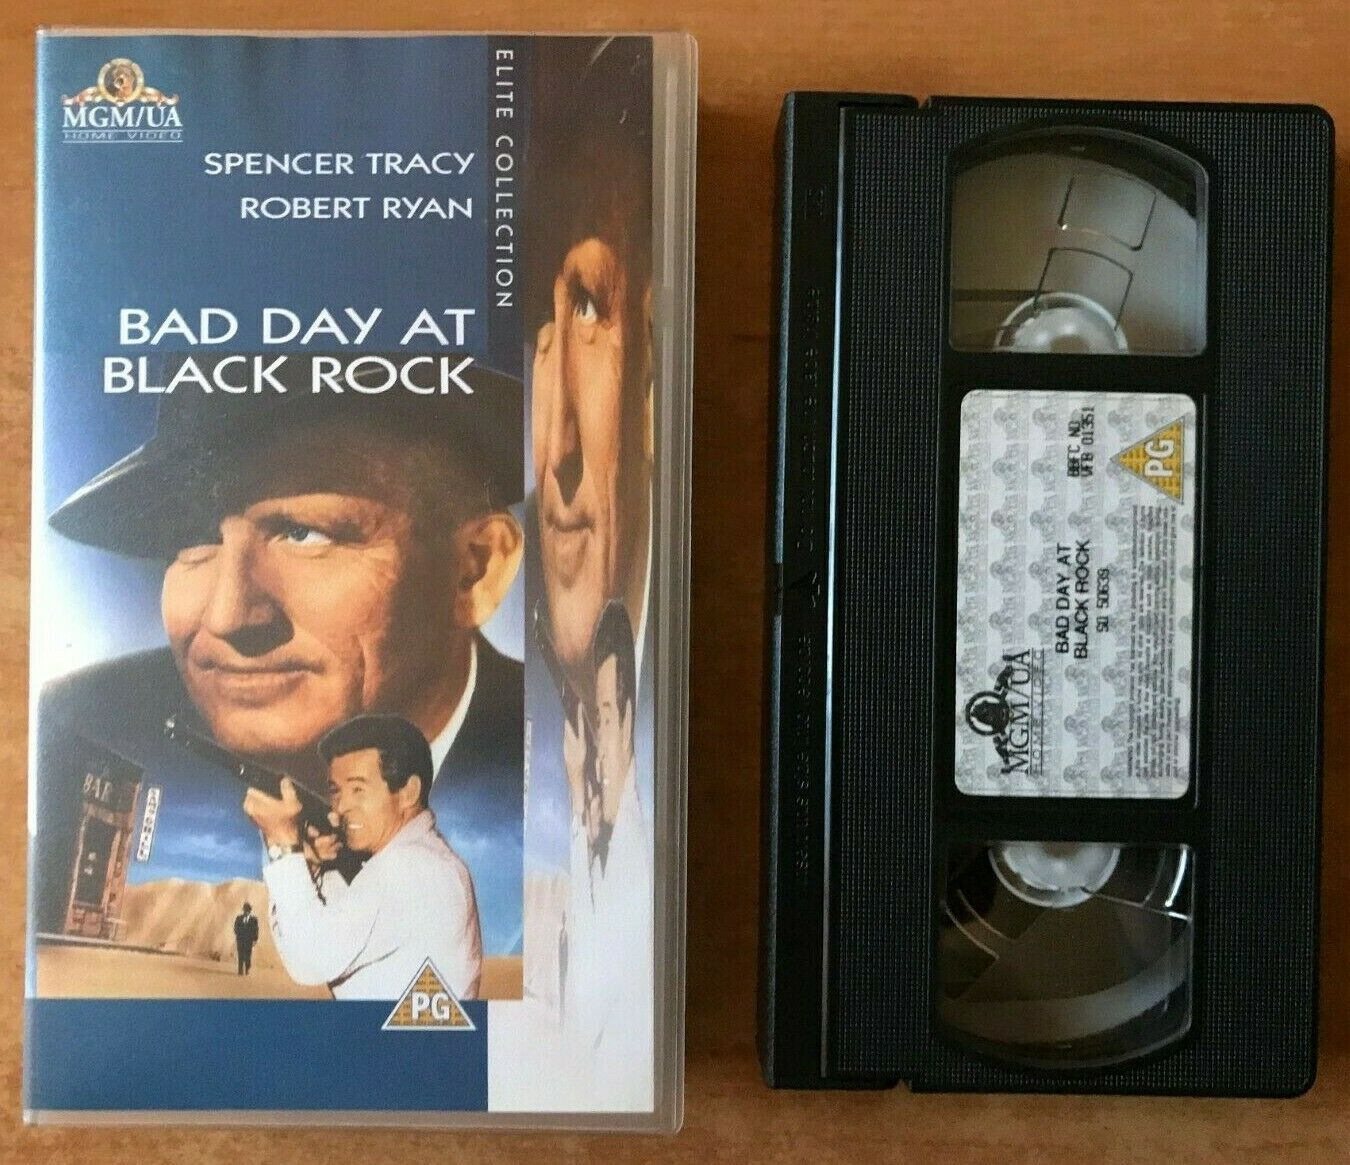 1955, At, Bad, Black, Crime, Day, Drama, PAL, Robert, Rock, Ryan, Spencer, Spencer Tracy, Tracy, VHS